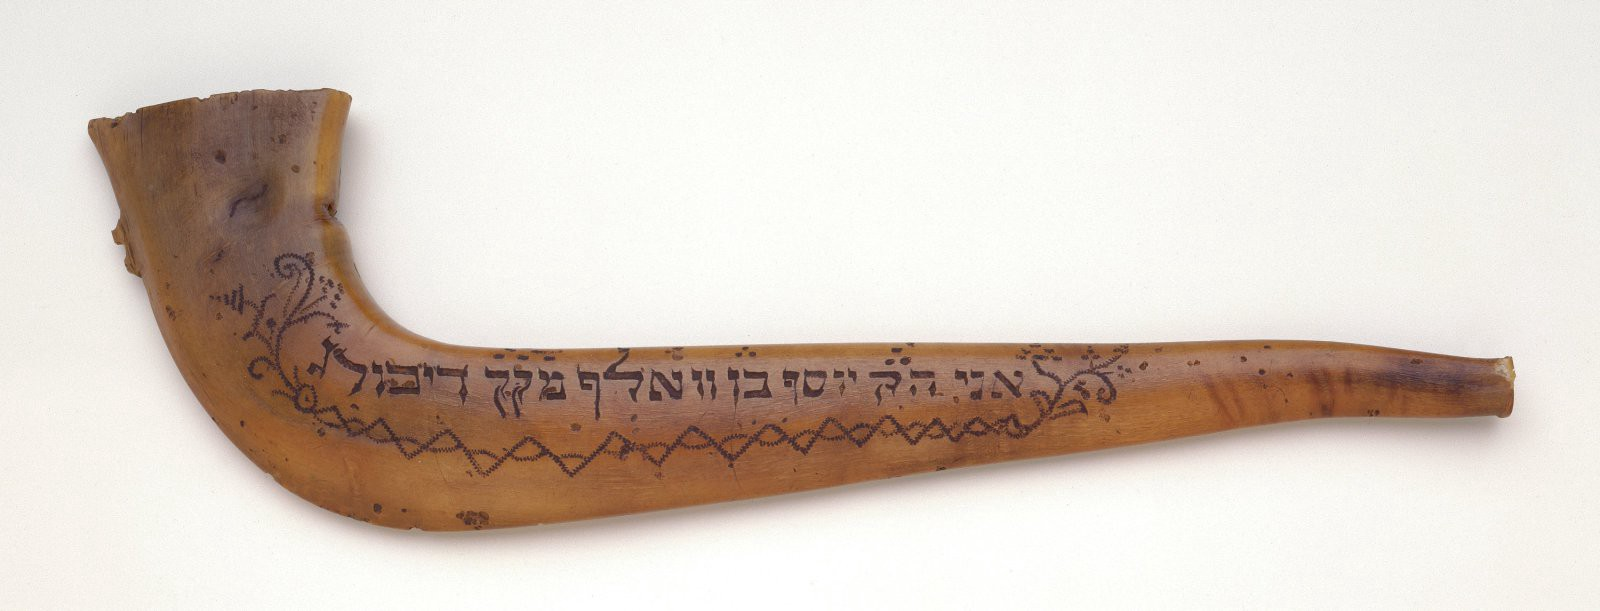 Objects Tell Stories Yom Kippur In The Jewish Museum Collection